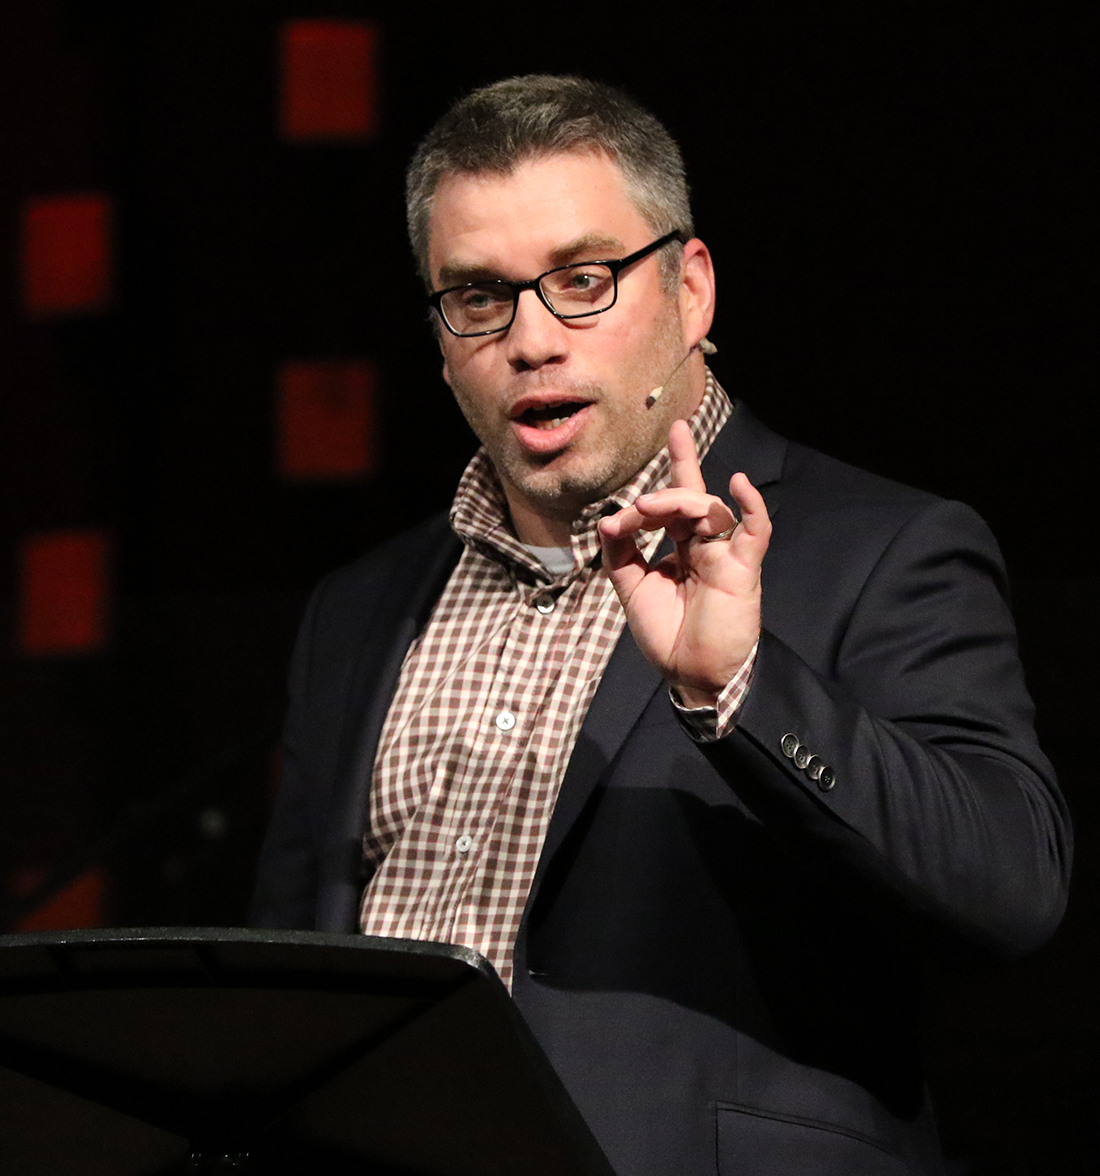 Dean Inserra at the National Conference on Preaching